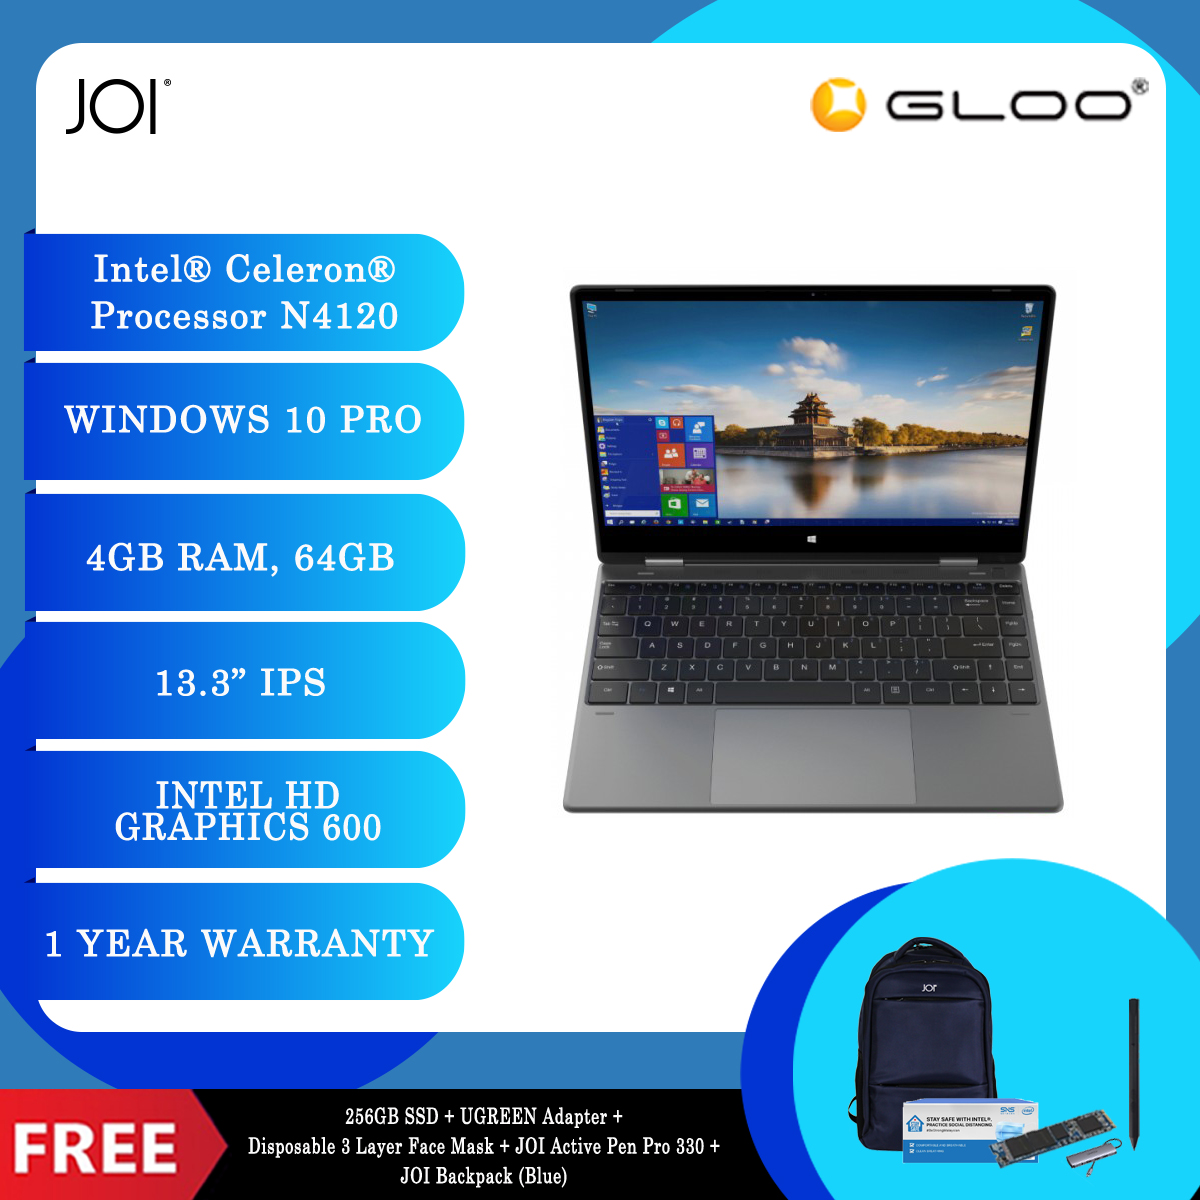 """JOI Book Touch 330 Pro (N4120,4GB+64GB,13.3"""" FHD,W10Pro) + 256GB SSD + UGREEN Adapter + Disposable 3 Layer Face Mask + JOI Active Pen Pro 330 + JOI Backpack (Blue) [BPPJOI0330MSBL]"""